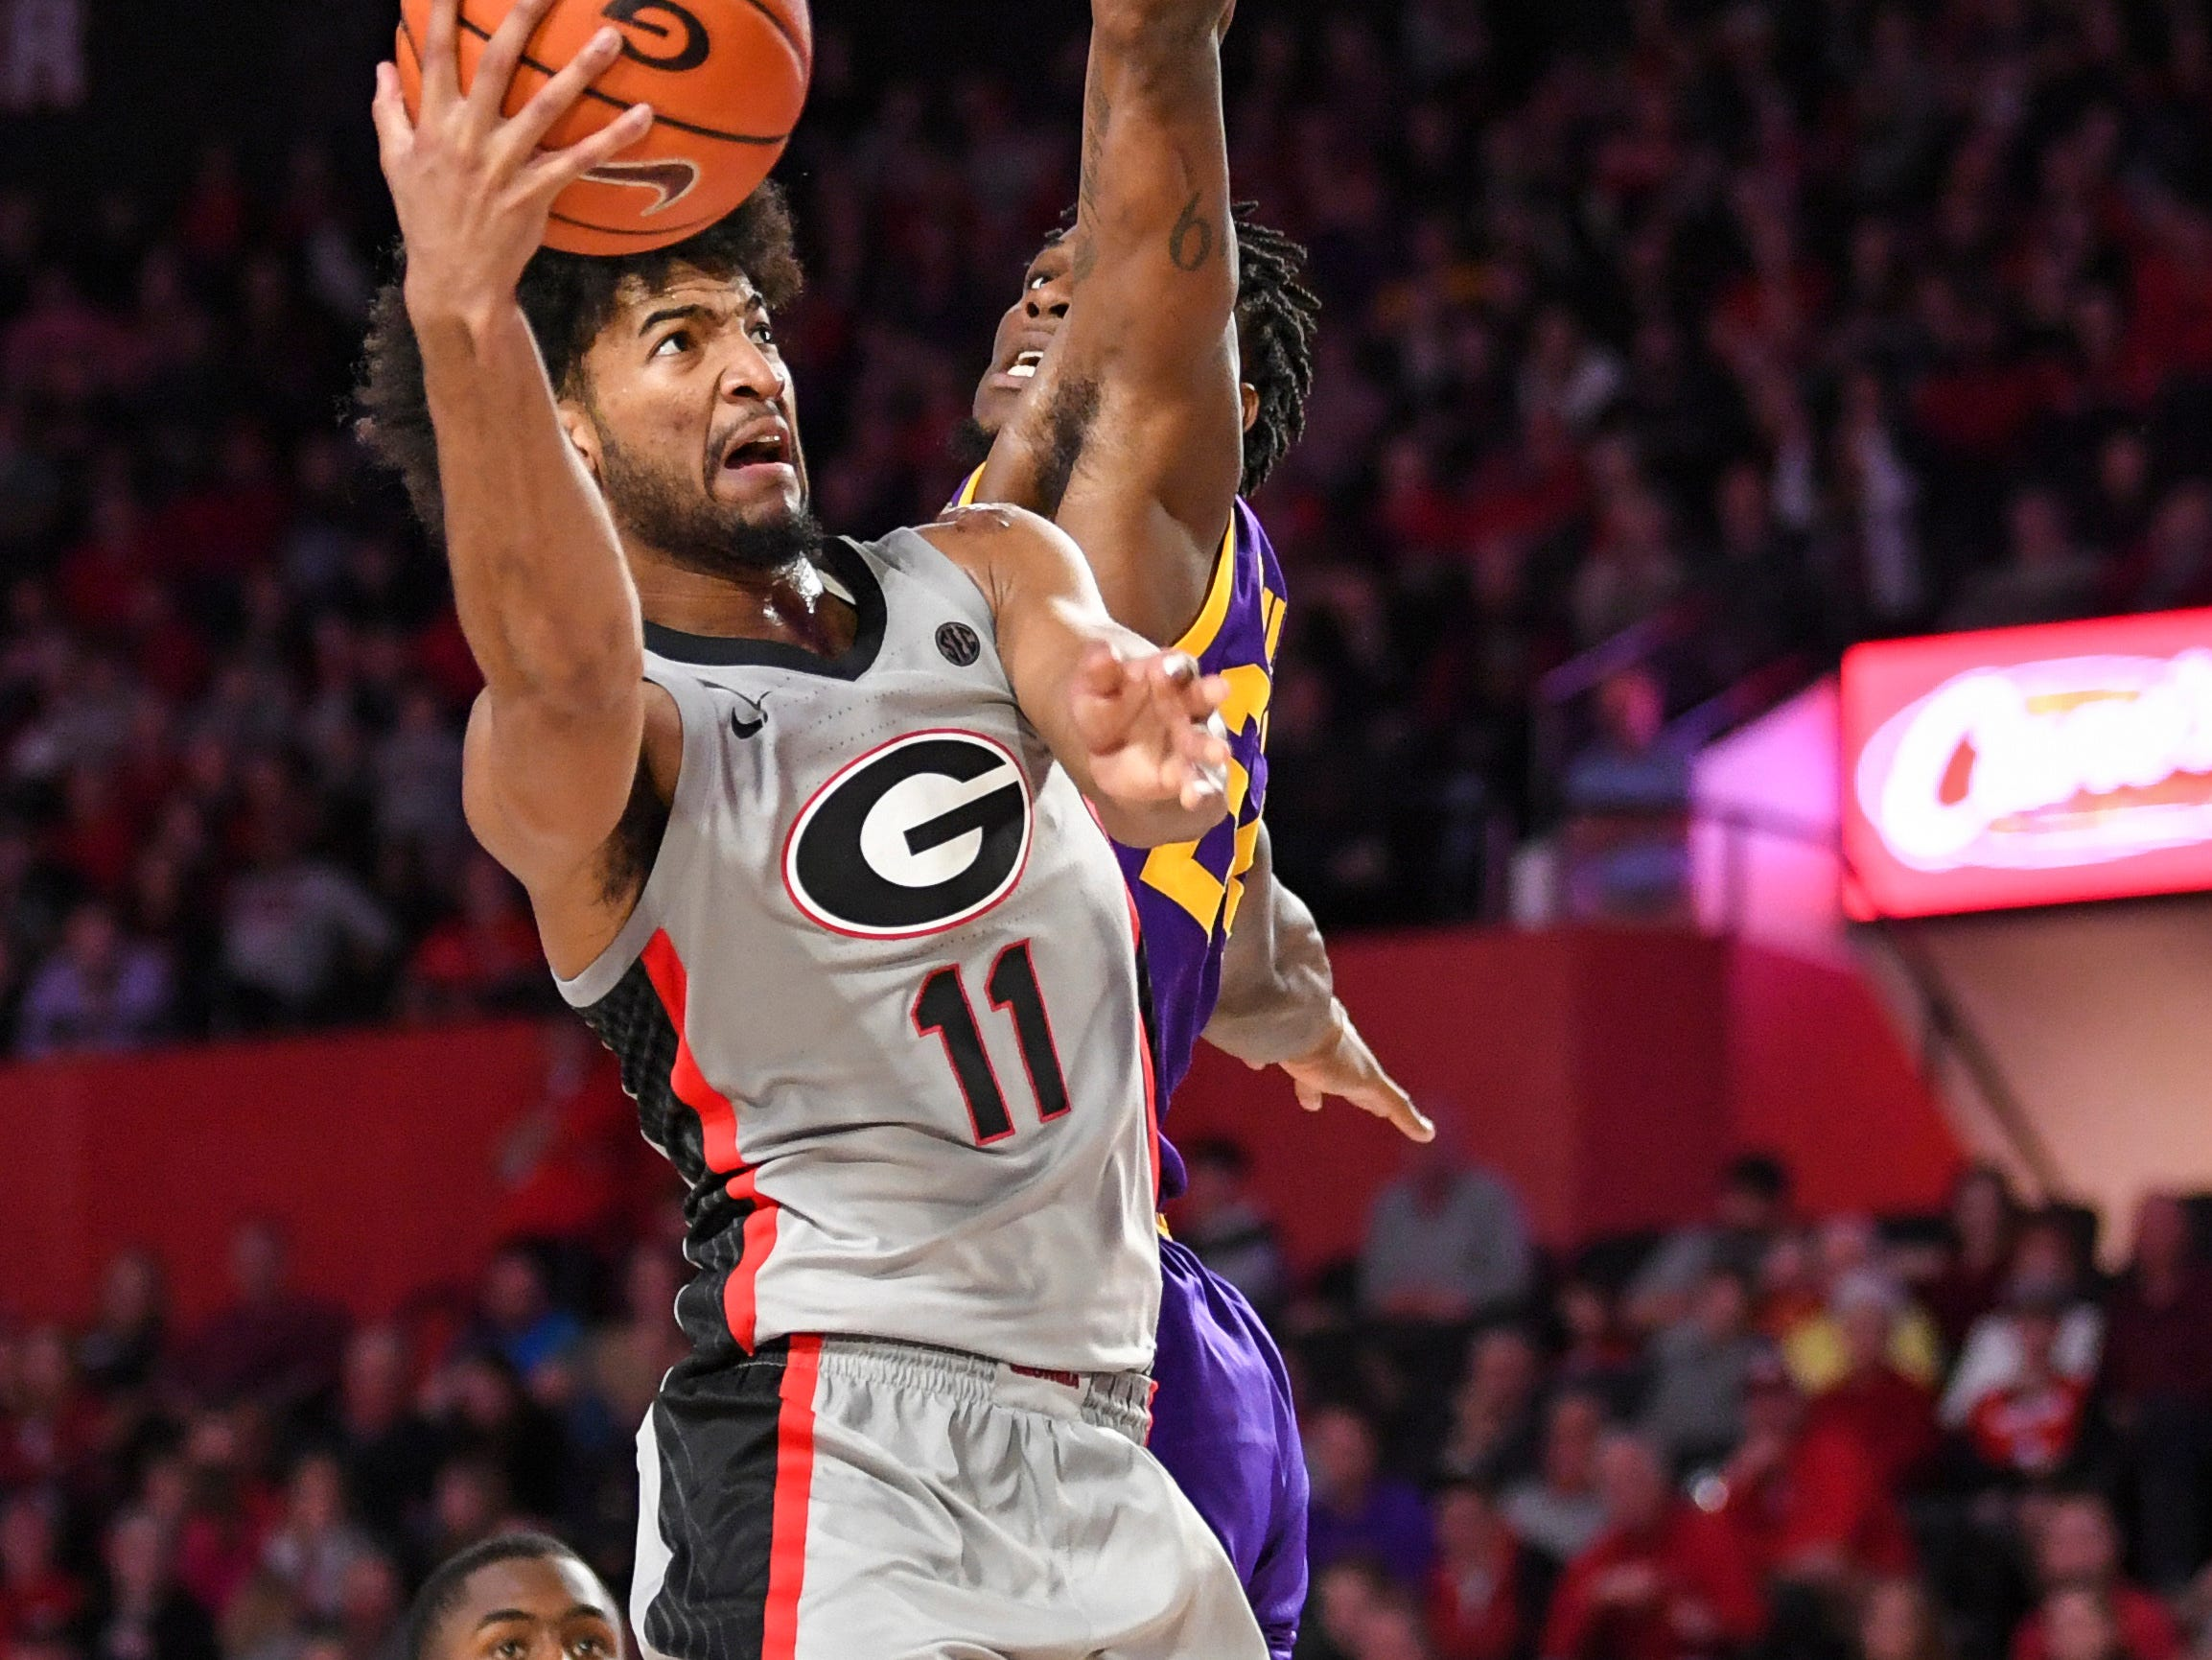 Feb 16, 2019; Athens, GA, USA; Georgia Bulldogs guard Christian Harrison (11) shoots against LSU Tigers forward Emmitt Williams (24) during the second half at Stegeman Coliseum. Mandatory Credit: Dale Zanine-USA TODAY Sports